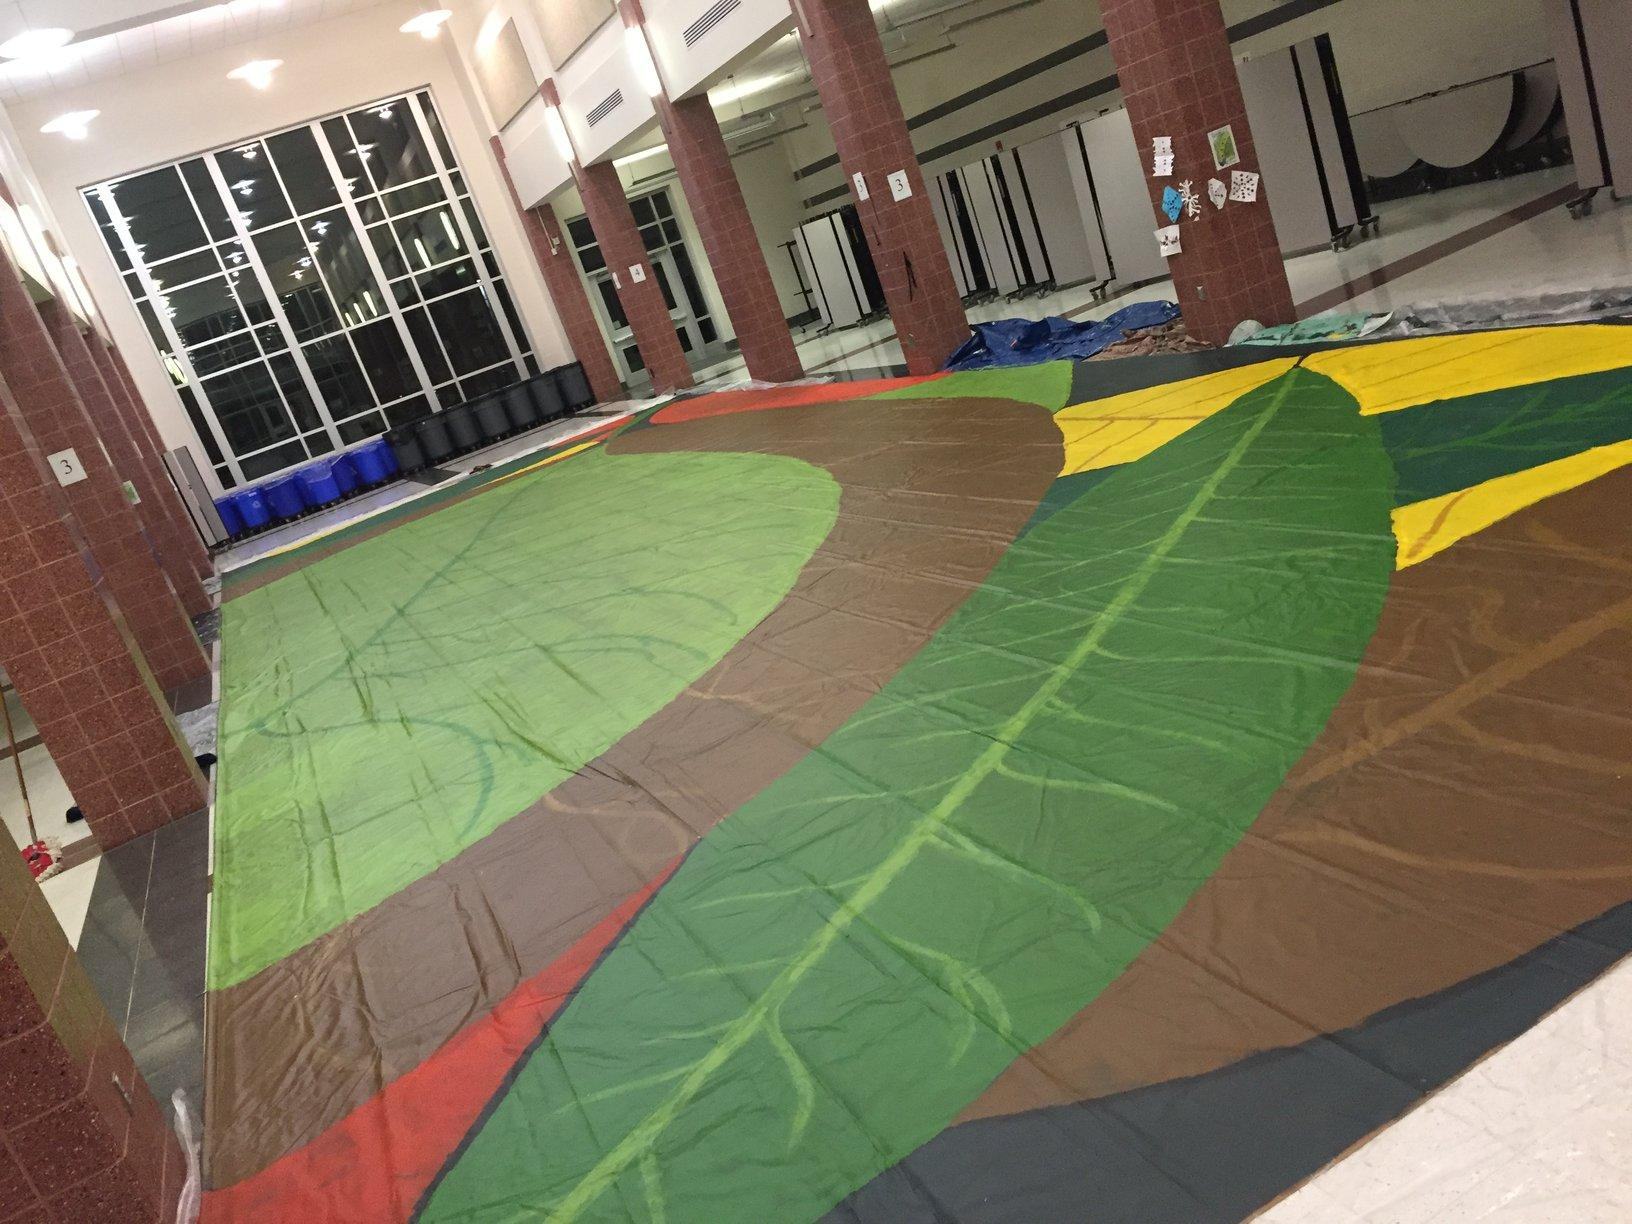 The performance floor in the making.